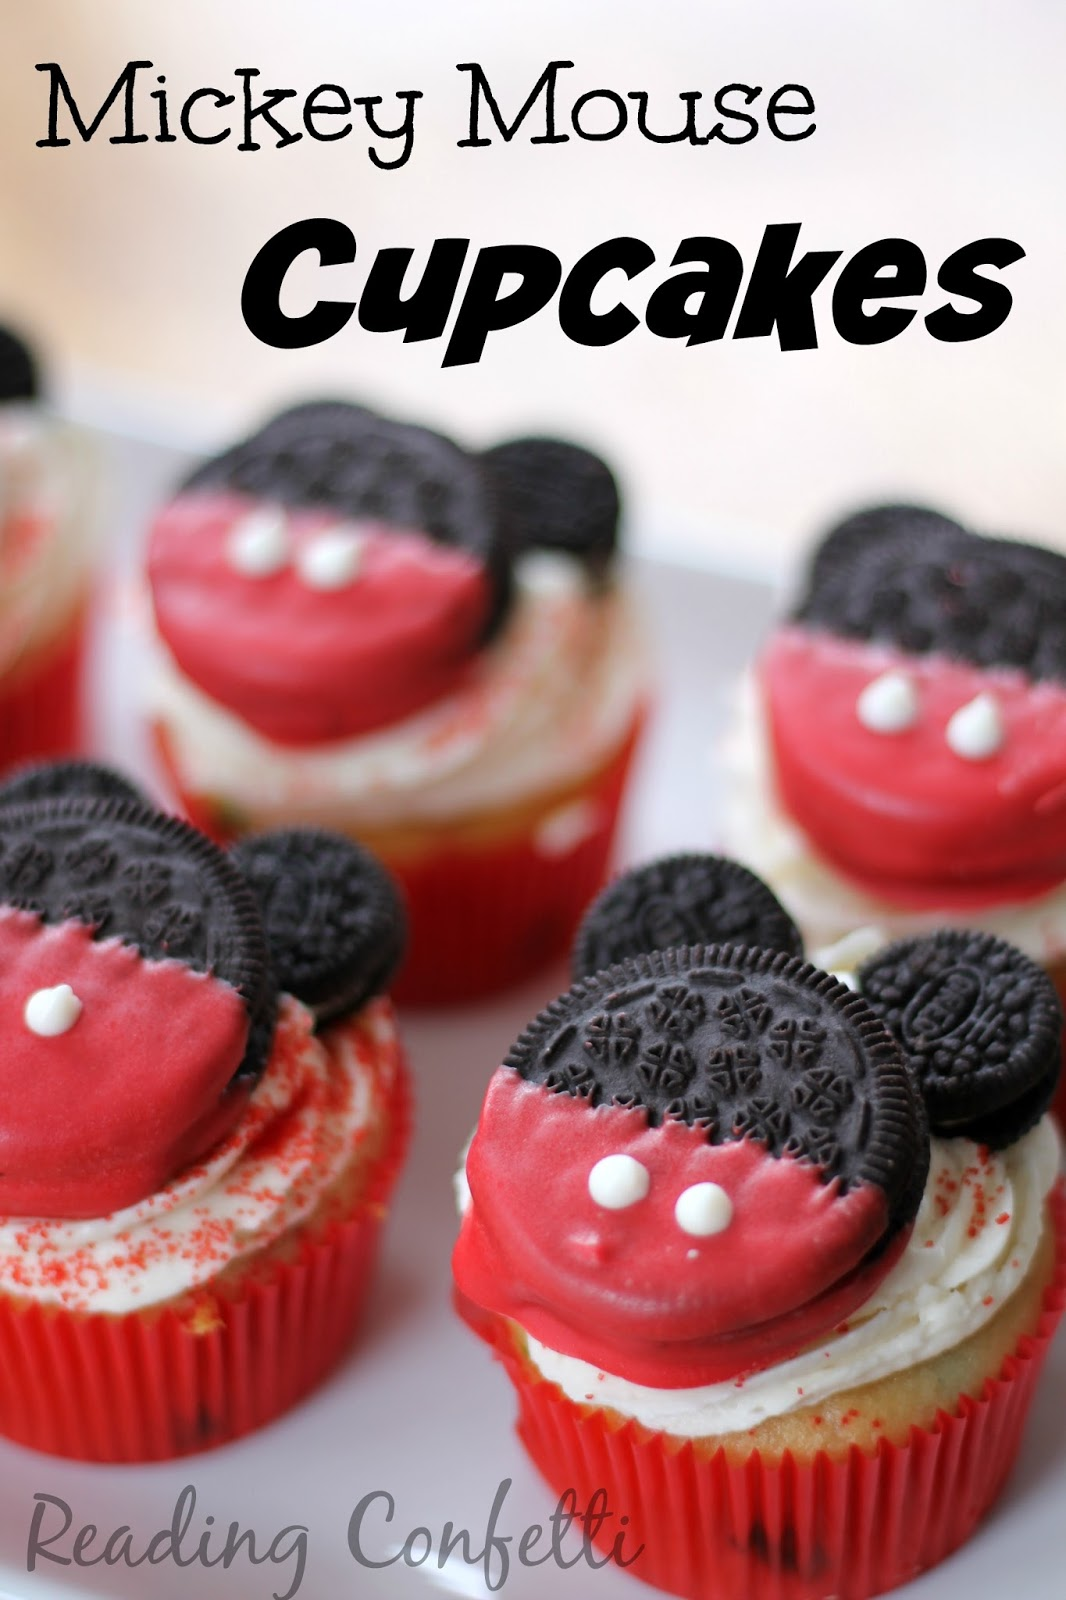 Pictures Of Mickey Mouse Cupcakes : Mickey Mouse Cupcakes: Baking with Kids ~ Reading Confetti